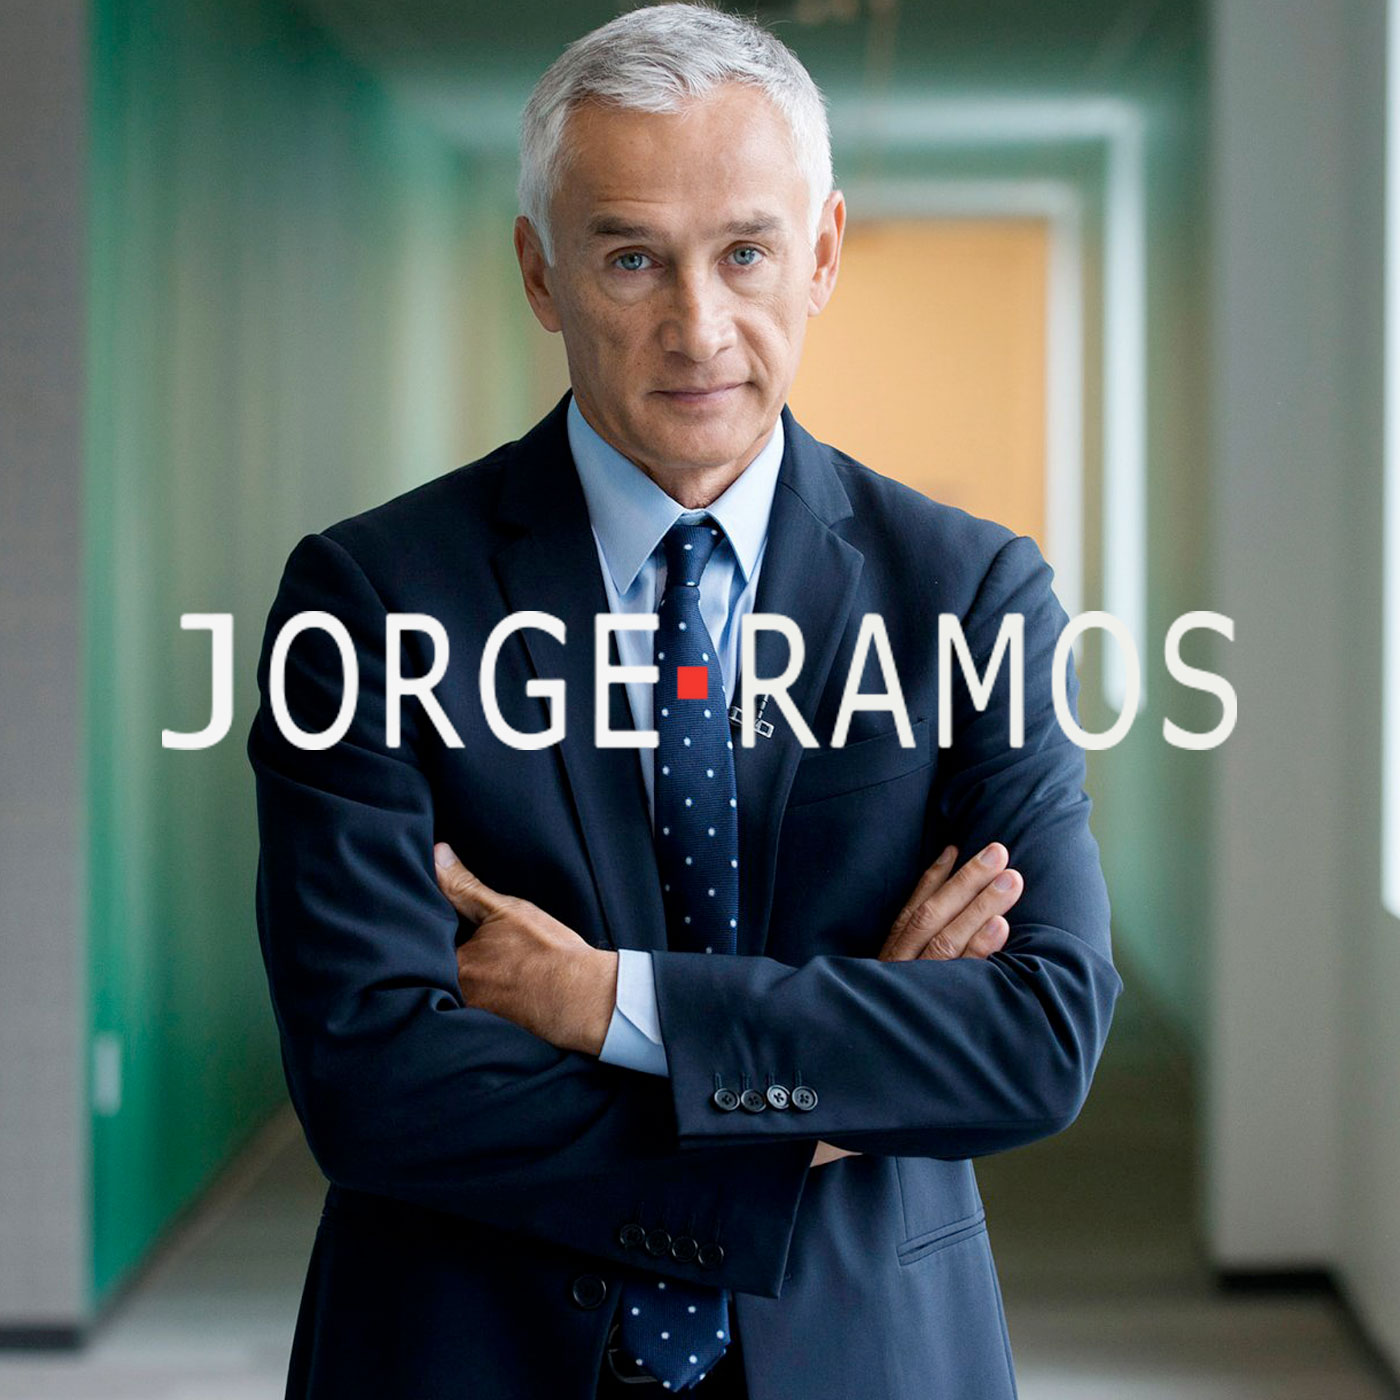 Podcasts - Jorge Ramos